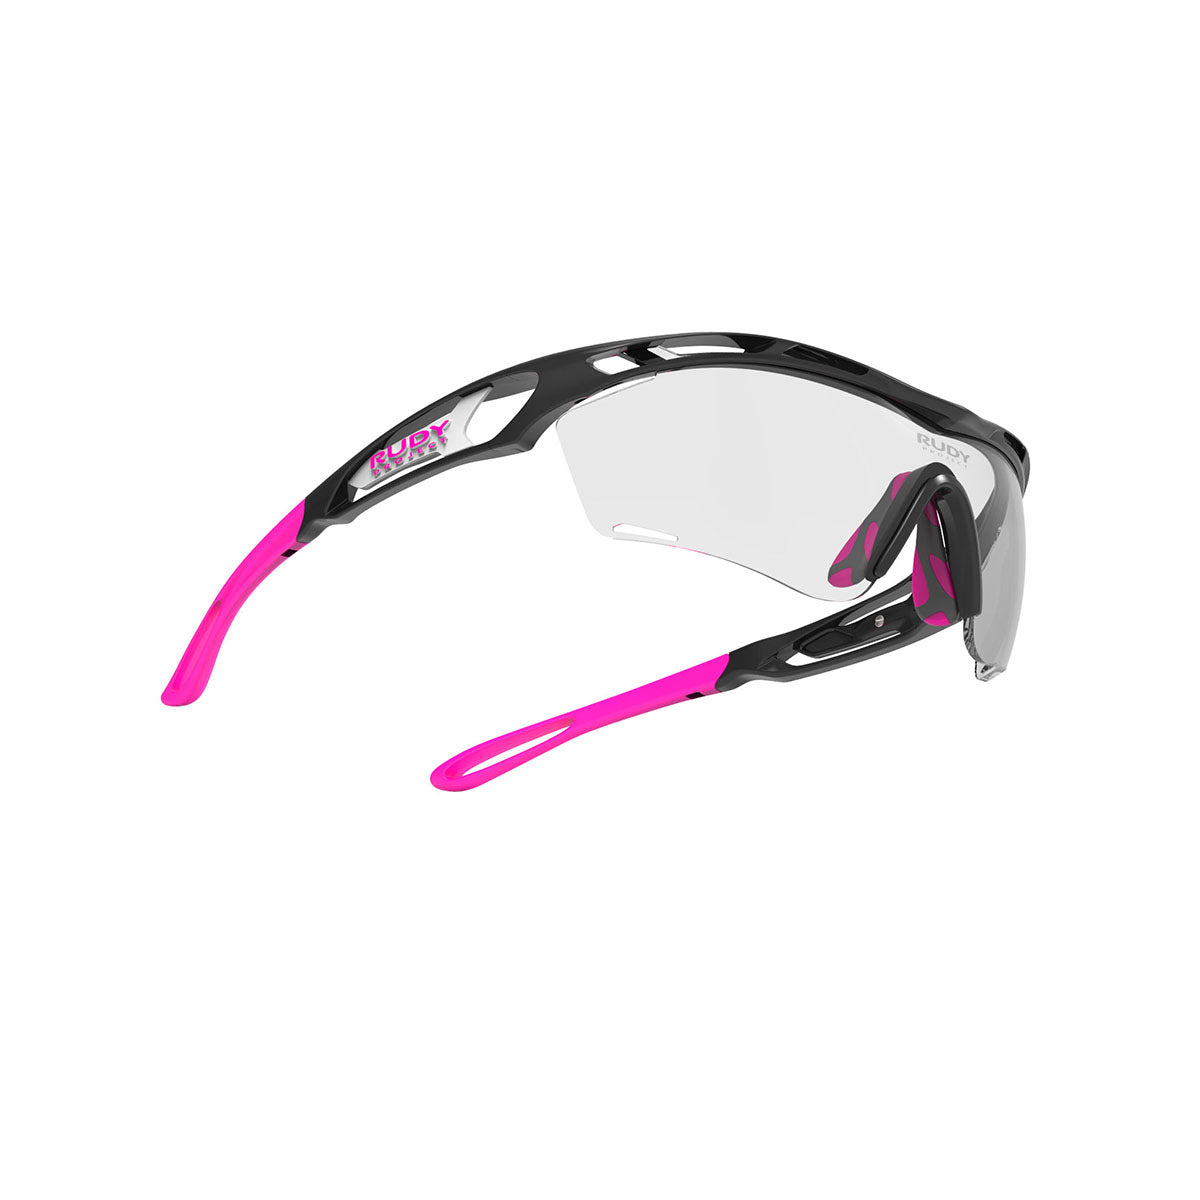 Rudy Project - Tralyx Golf - frame color: Matte Black - lens color: ImpactX-2 Photochromic Laser Purple - photo angle: Bottom Front Angle Variant Hover Image